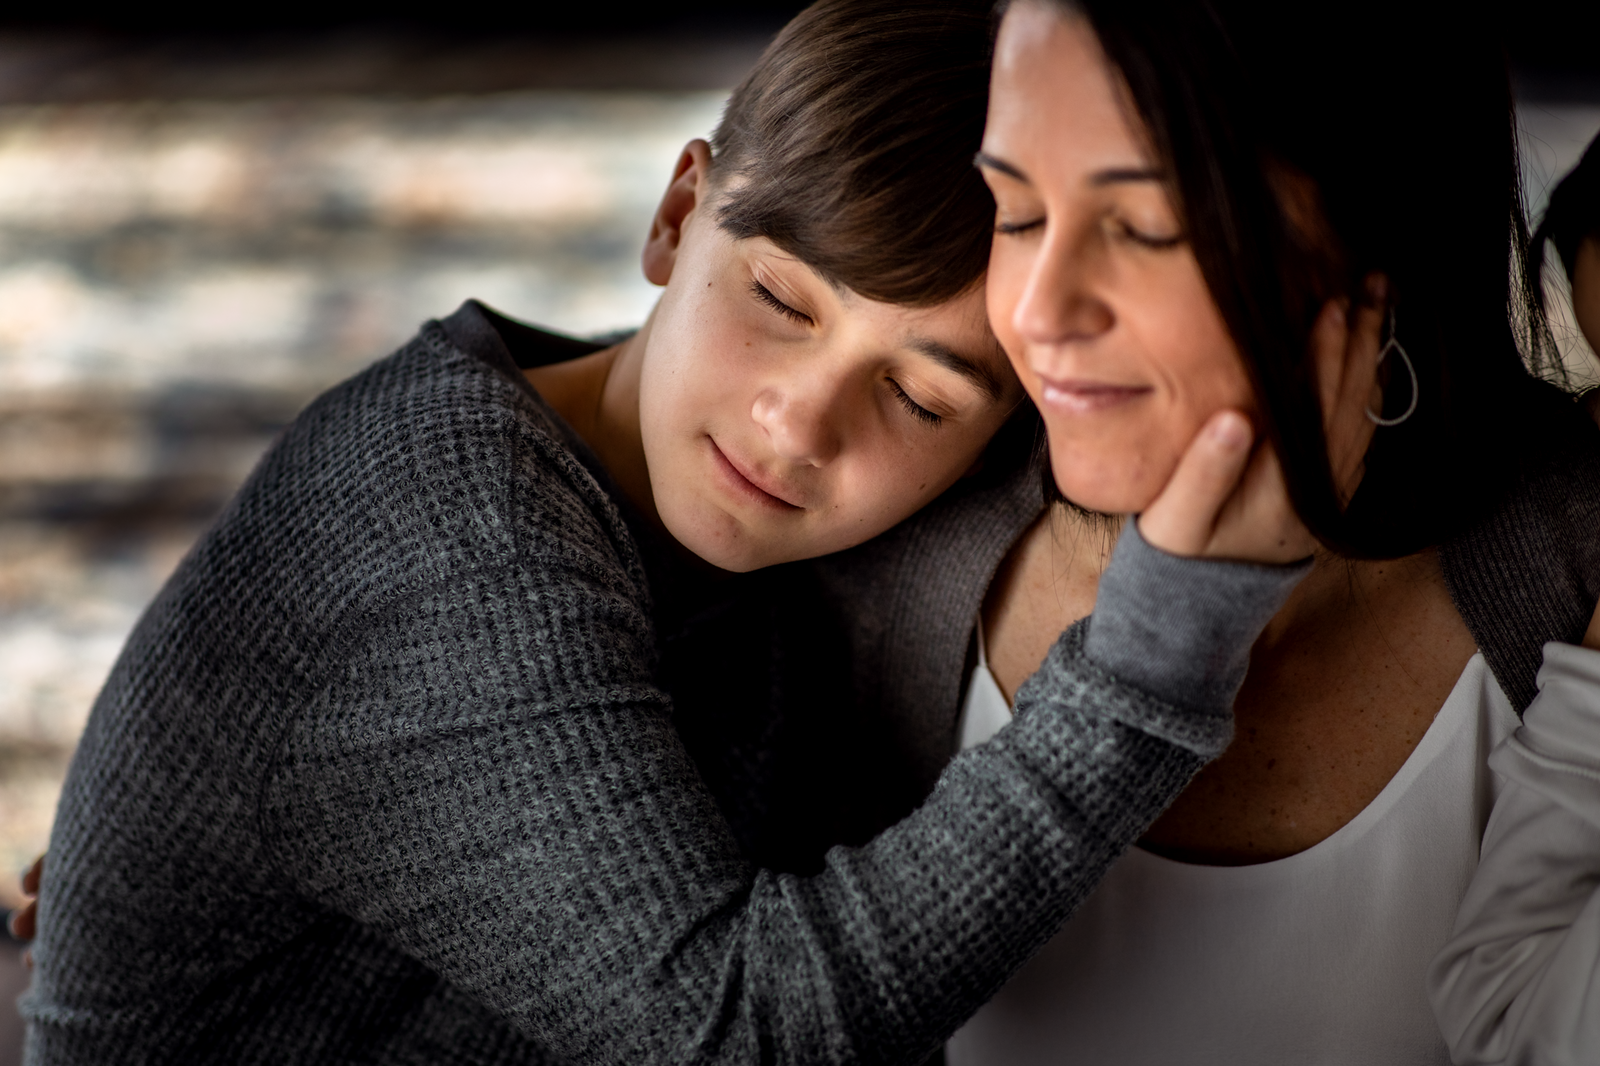 family photographer, columbus, ga, atlanta, wander years, teen son hugging mom, hand on face, ker-fox photography_0819